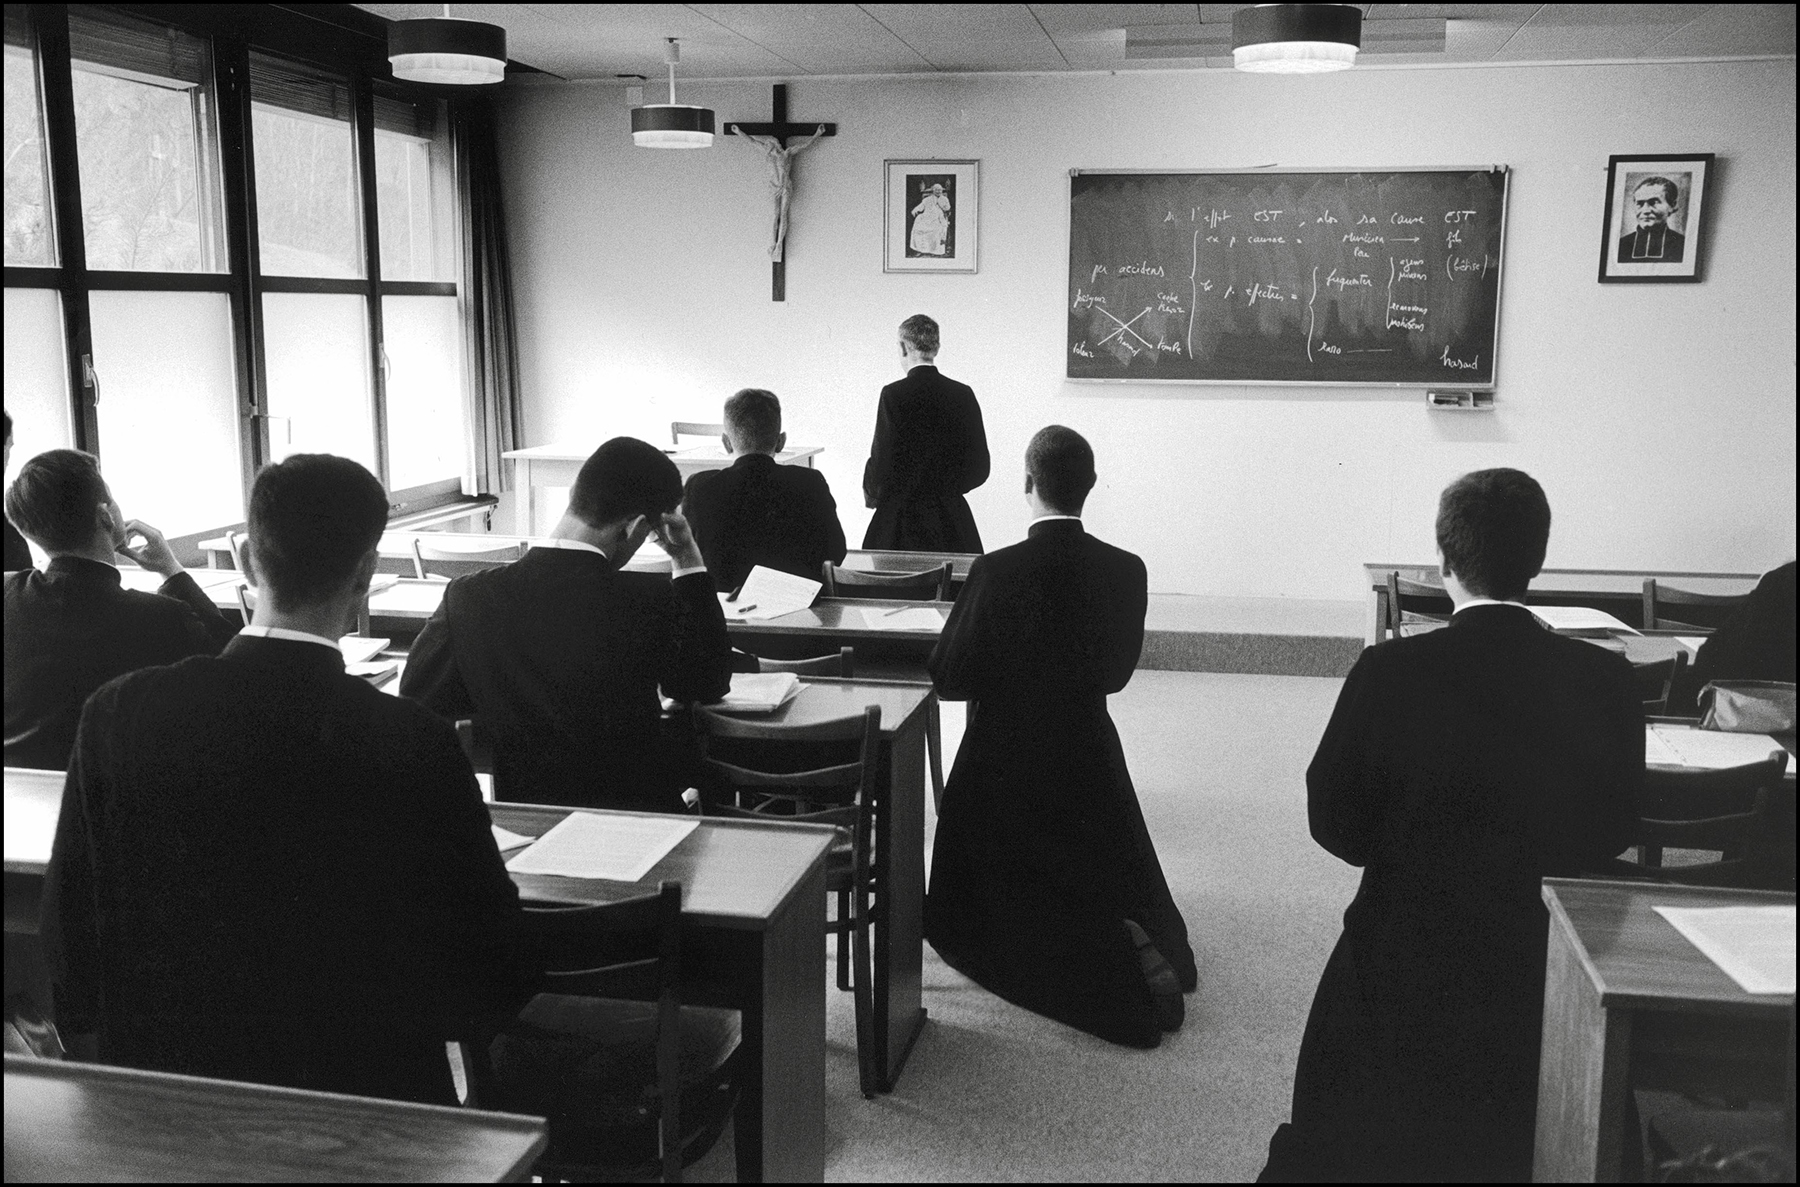 04/00/1999. EXCLUSIVE Econe, the seminary of the excommunicated